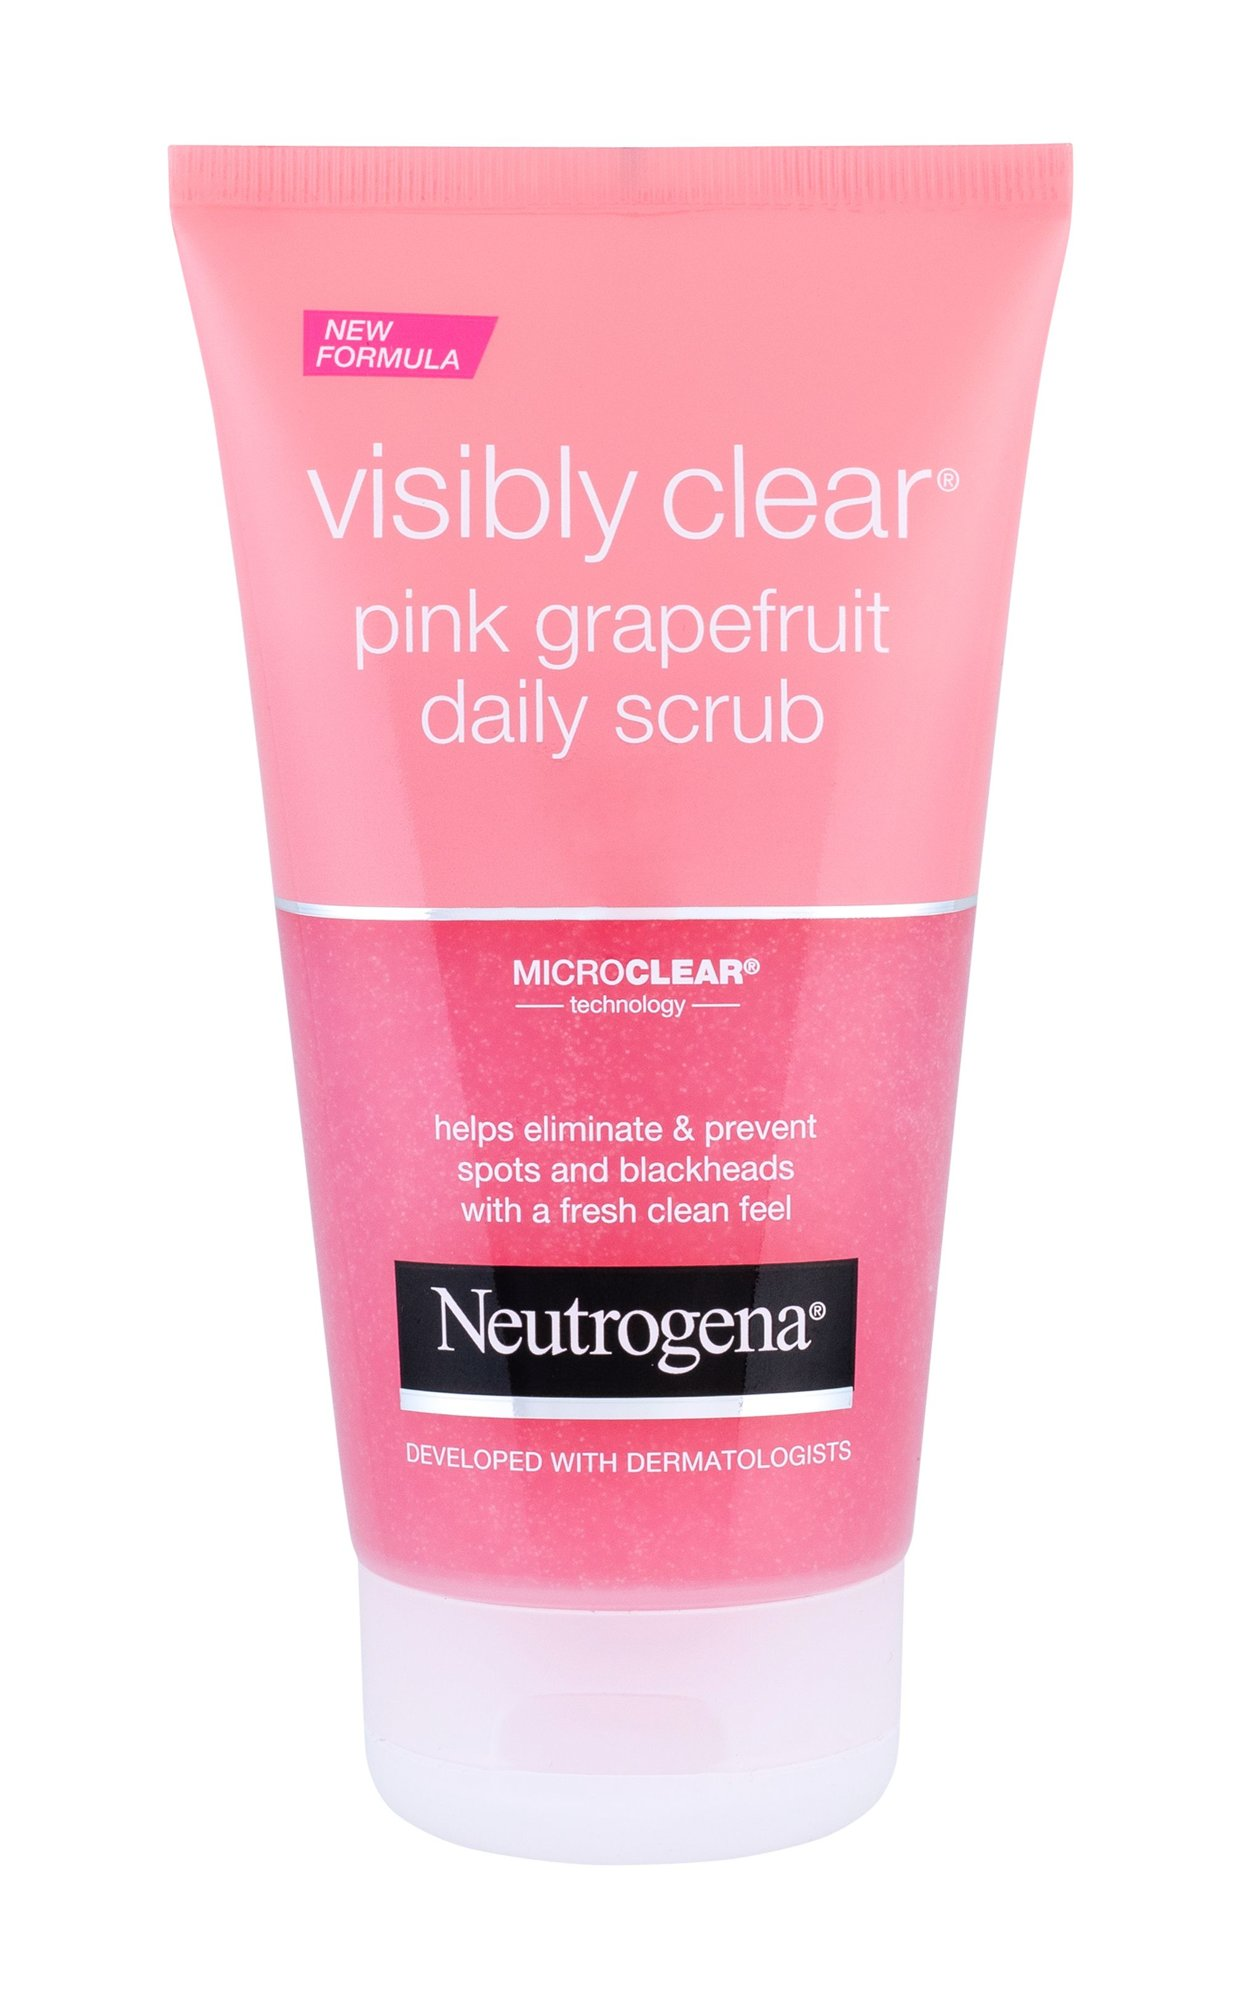 Neutrogena Visibly Clear Pink Grapefruit Daily Scrub Cosmetic 150ml